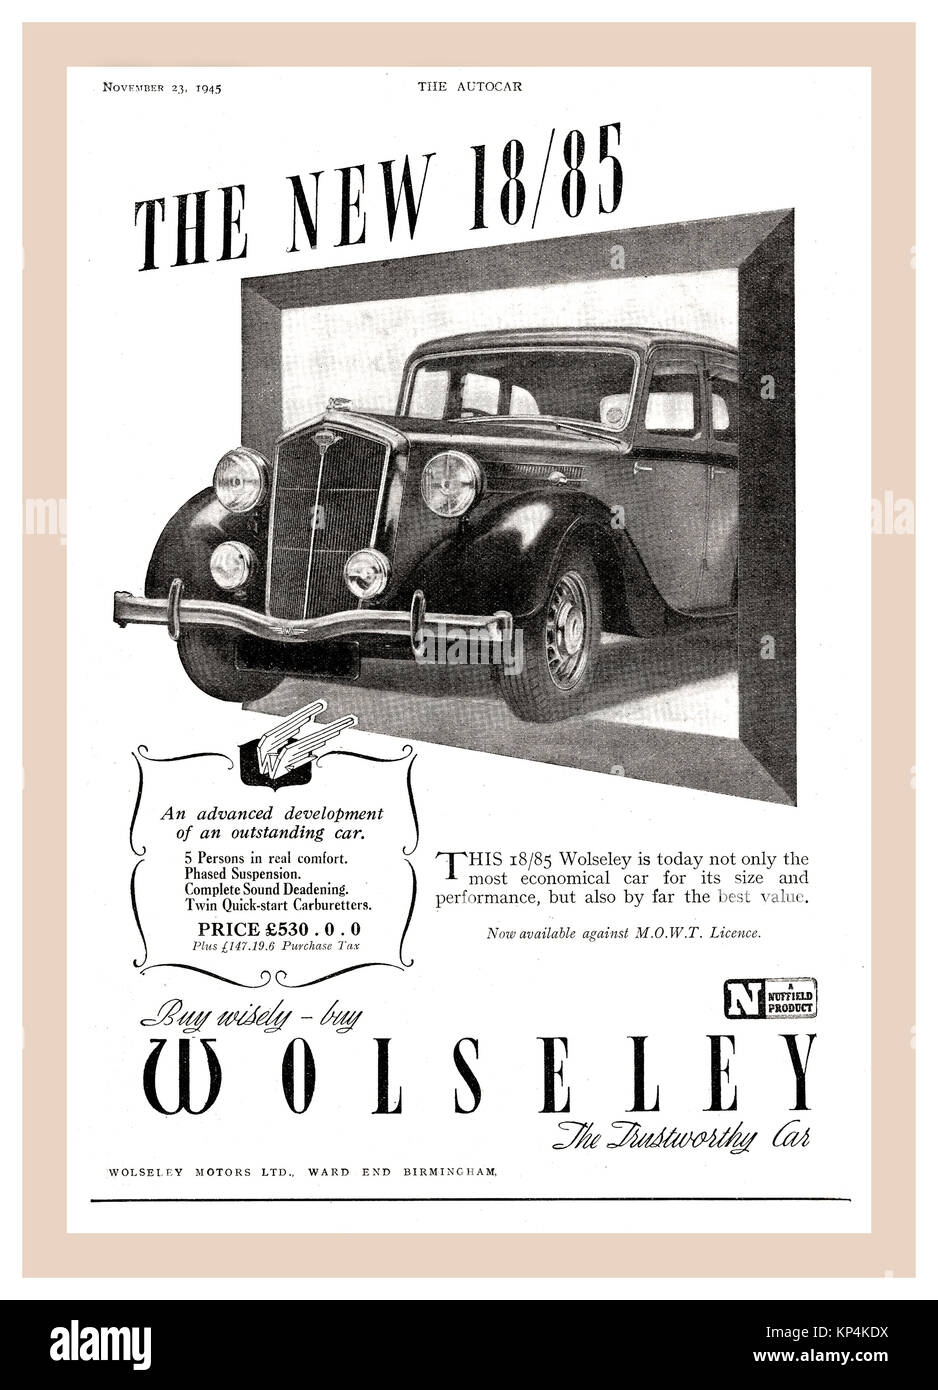 Vintage 30's /40's Autocar page advertisement for Wolseley 18/85 (1938 to 1948)  motorcar The Wolseley 18/85 - Stock Image